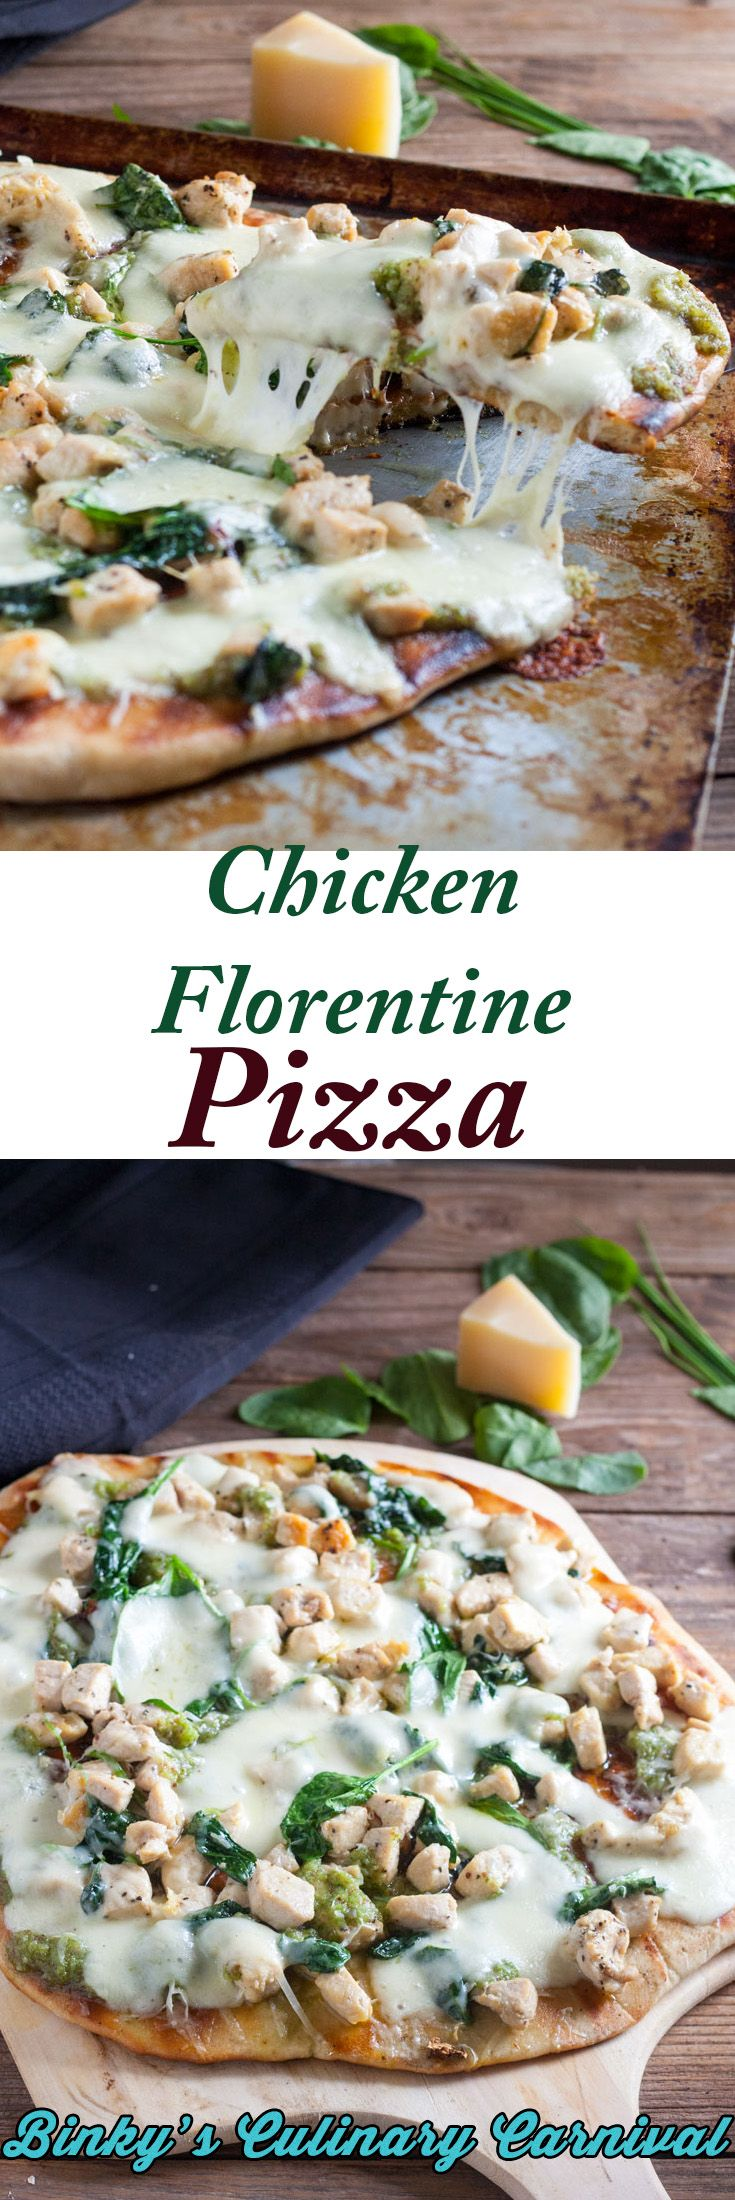 This Thin Crust Grilled Chicken Florentine Pizza has Garlic Scape Pesto for the sauce! #ifbcx